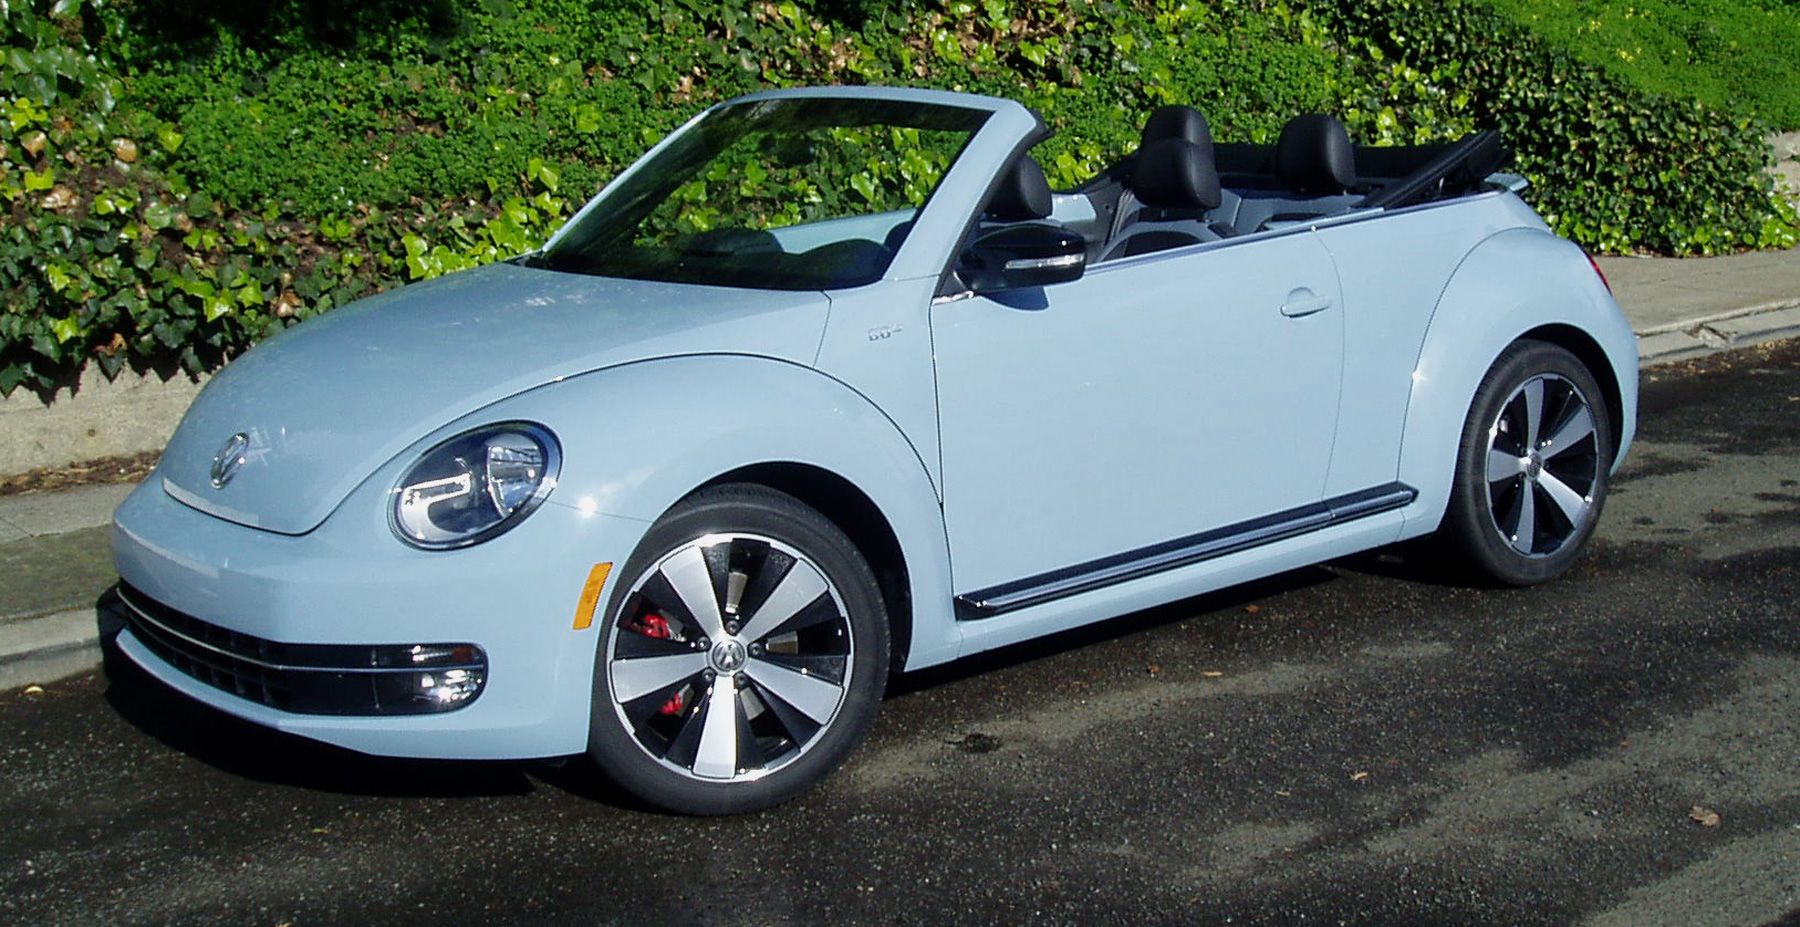 latest 2013 volkswagen beetle convertible grows in stature and appeal edition turbo both cool and hot by arv voss the 2013 volkswagen beetle convertible